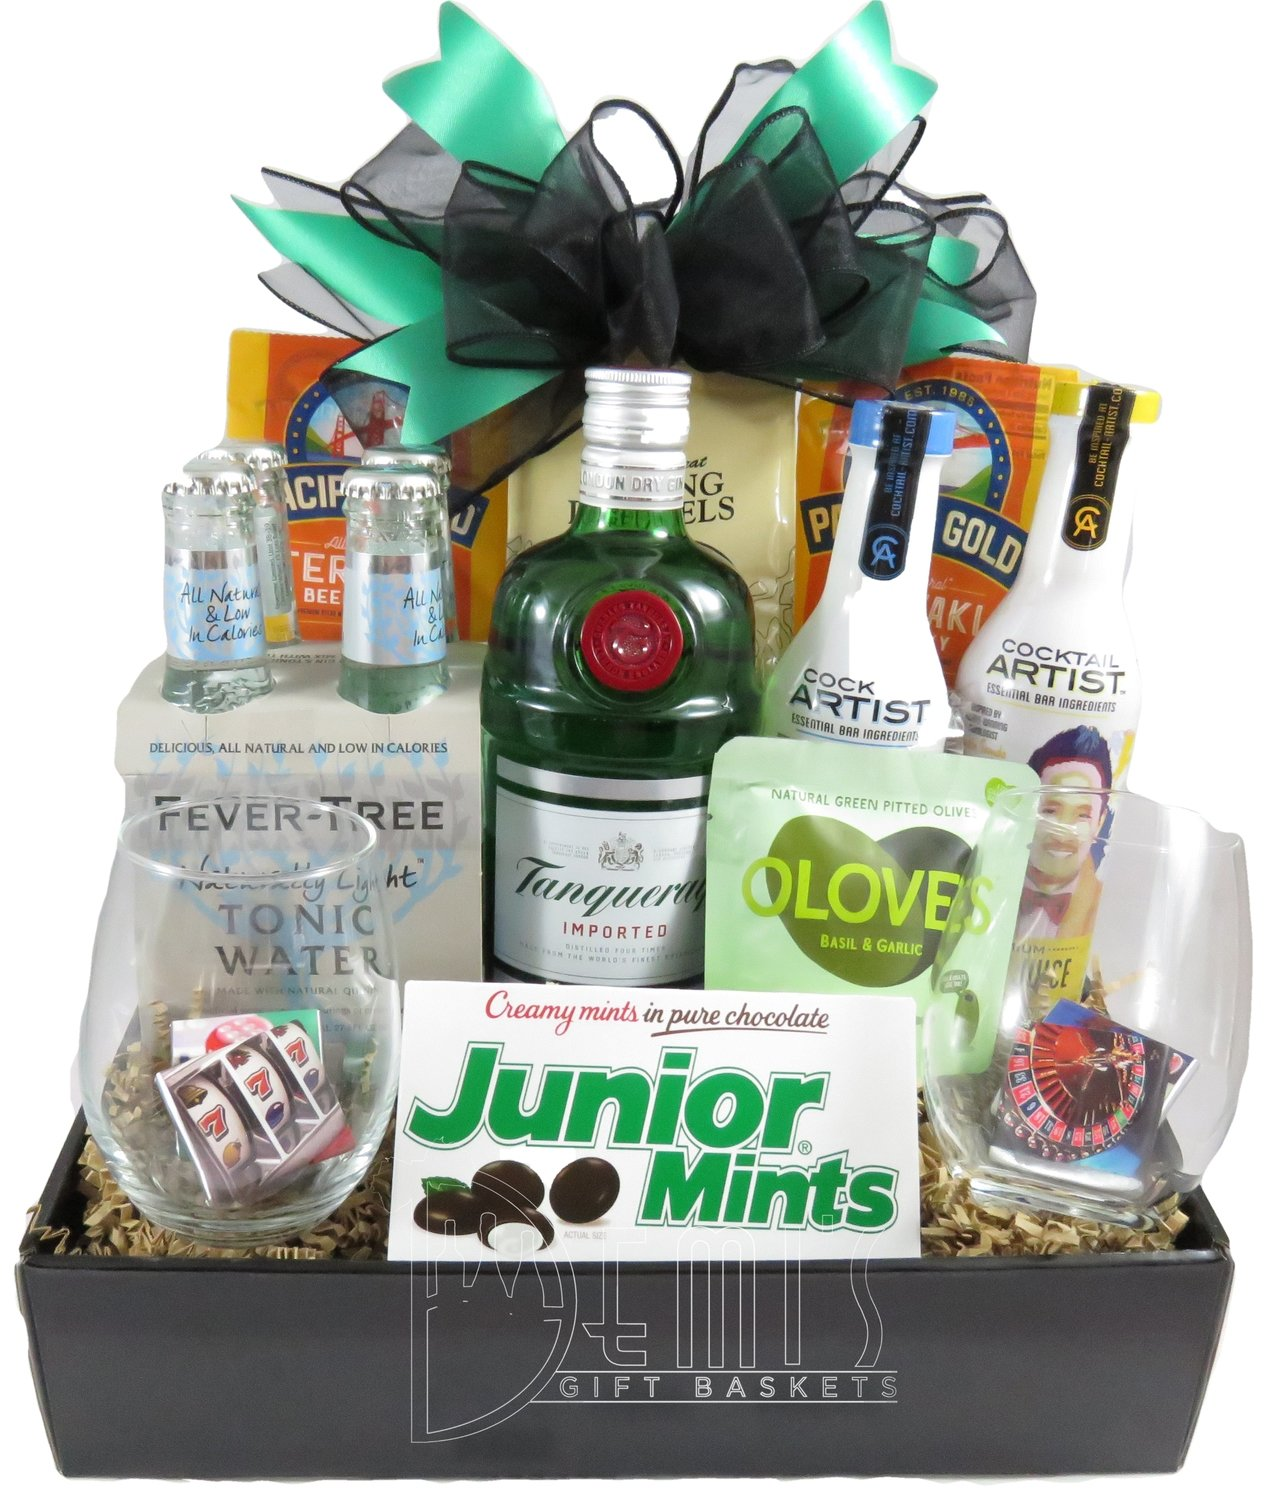 Liquor: Gin and Tonic Snack Box